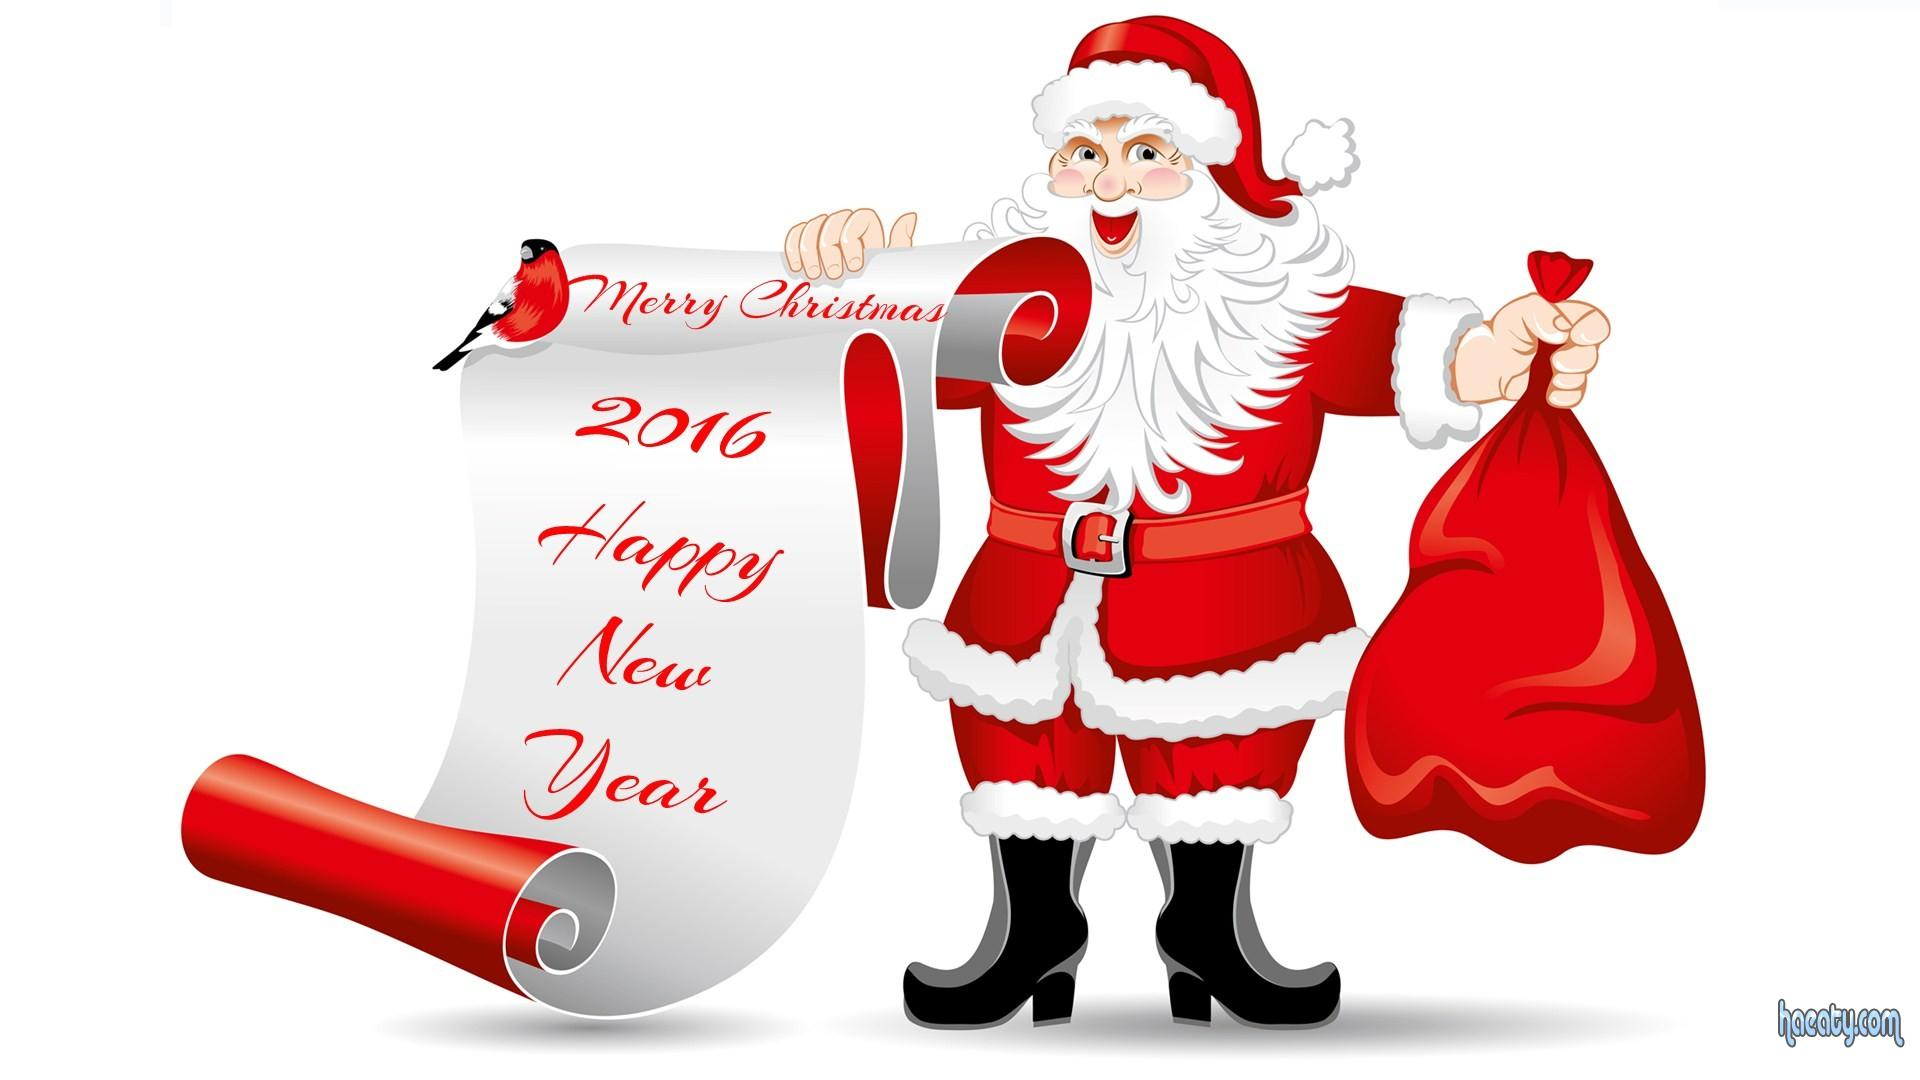 الكريسماس 2016-Merry-Christmas-and-Happy-new-year-2016 1450540620141.jpg